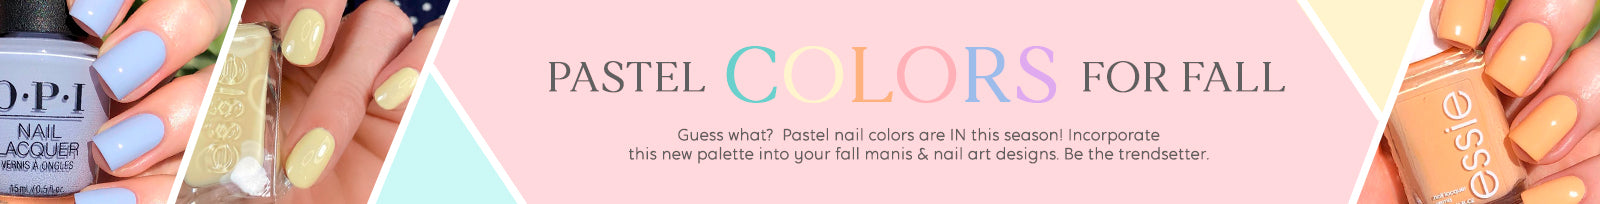 Pastel Nail Colors For Fall